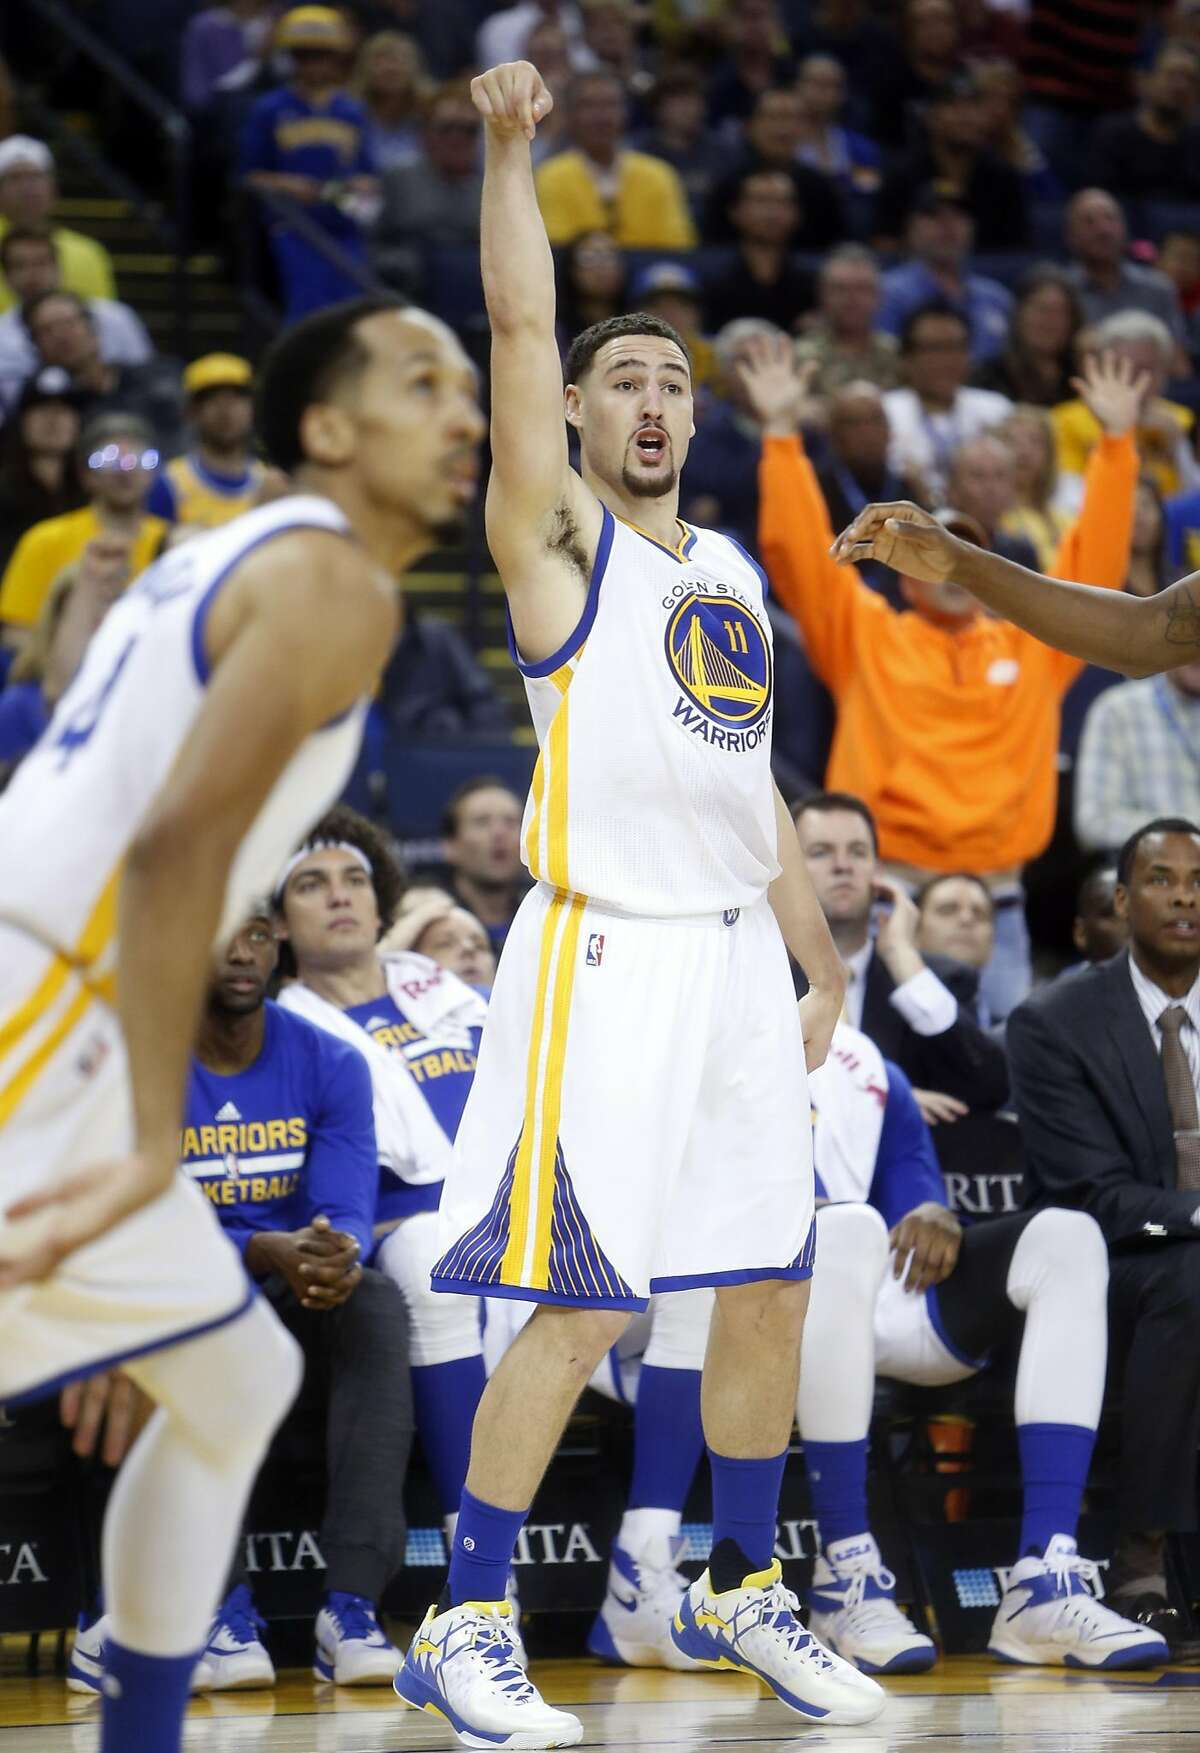 Golden State Warriors' Klay Thompson watches his 3-point attempt in 2nd quarter against Portland Trail Blazers in NBA game at Oracle Arena in Oakland, Calif., on Sunday, April 3, 2016.